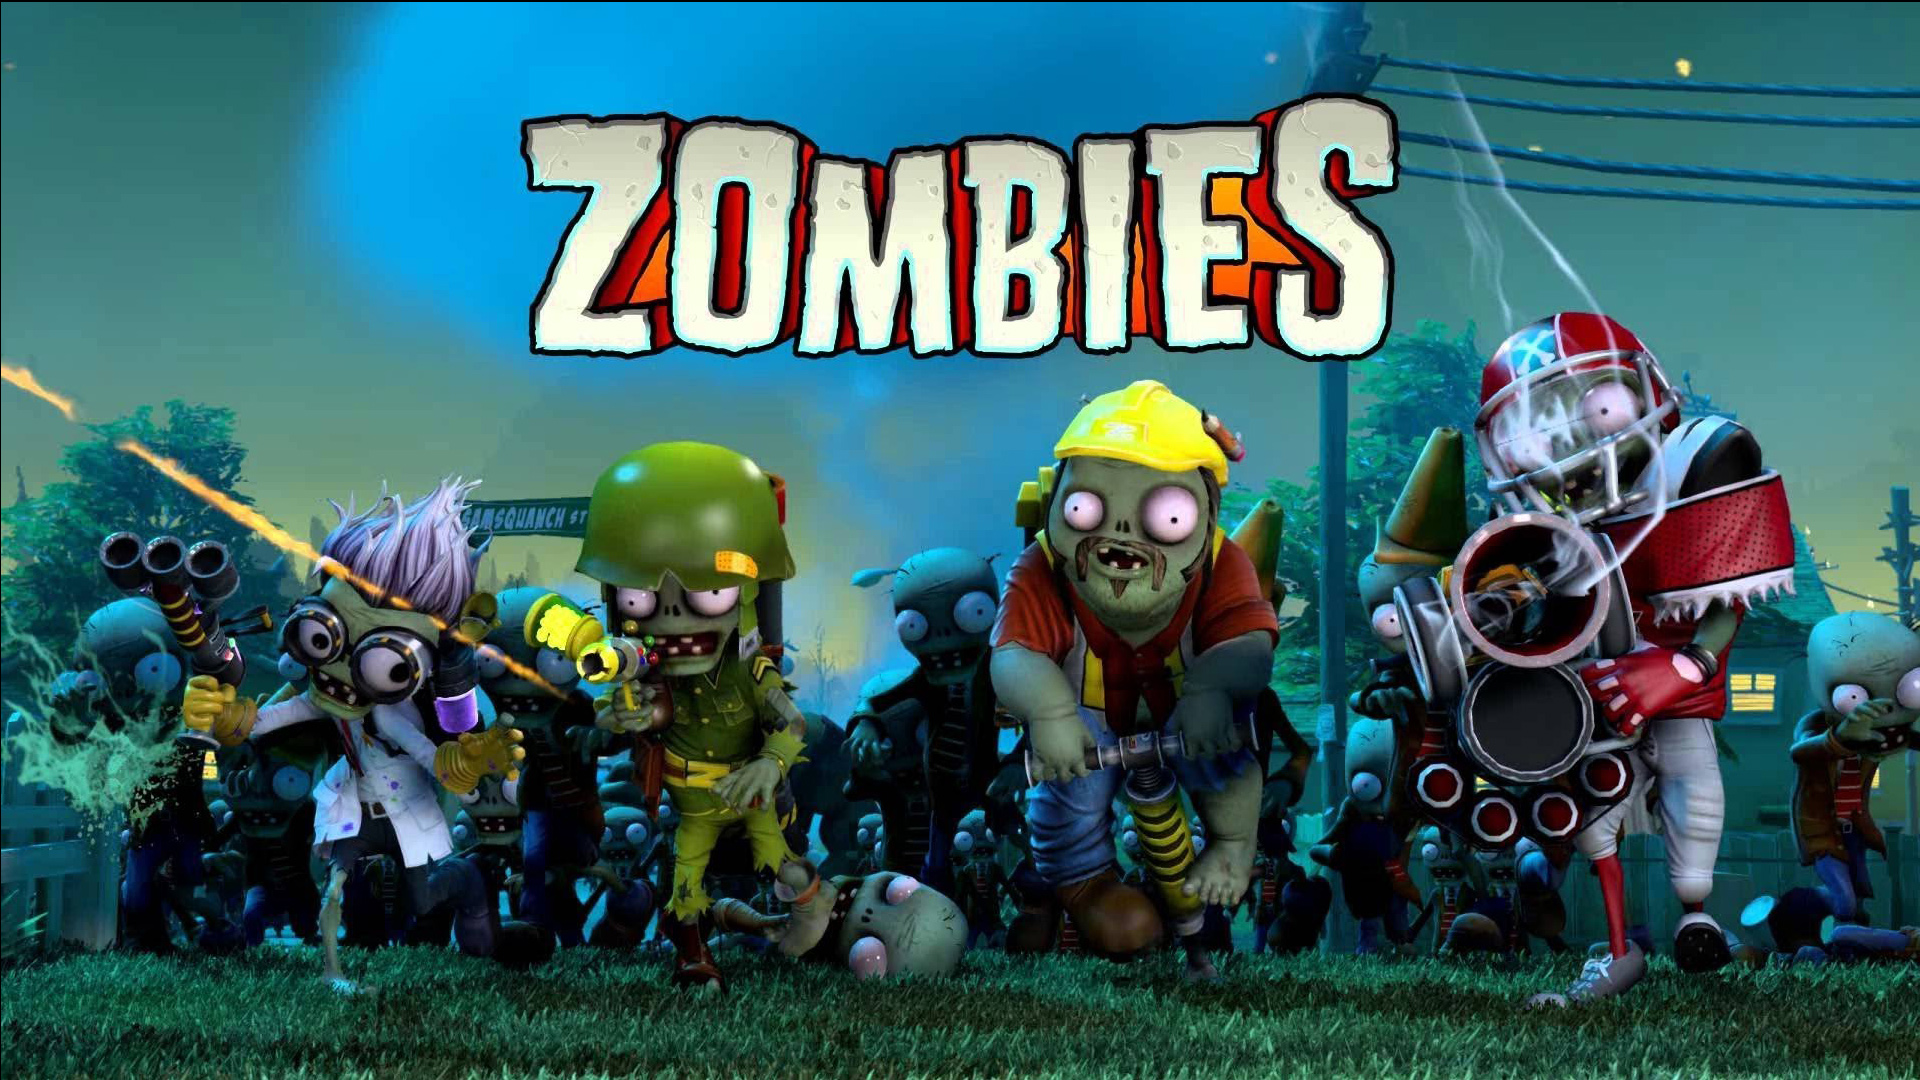 of battleground highway area gameplay backyard vs to zone zombies in garden review additions reviews world feature the plants warfare shared is game s biggest one which